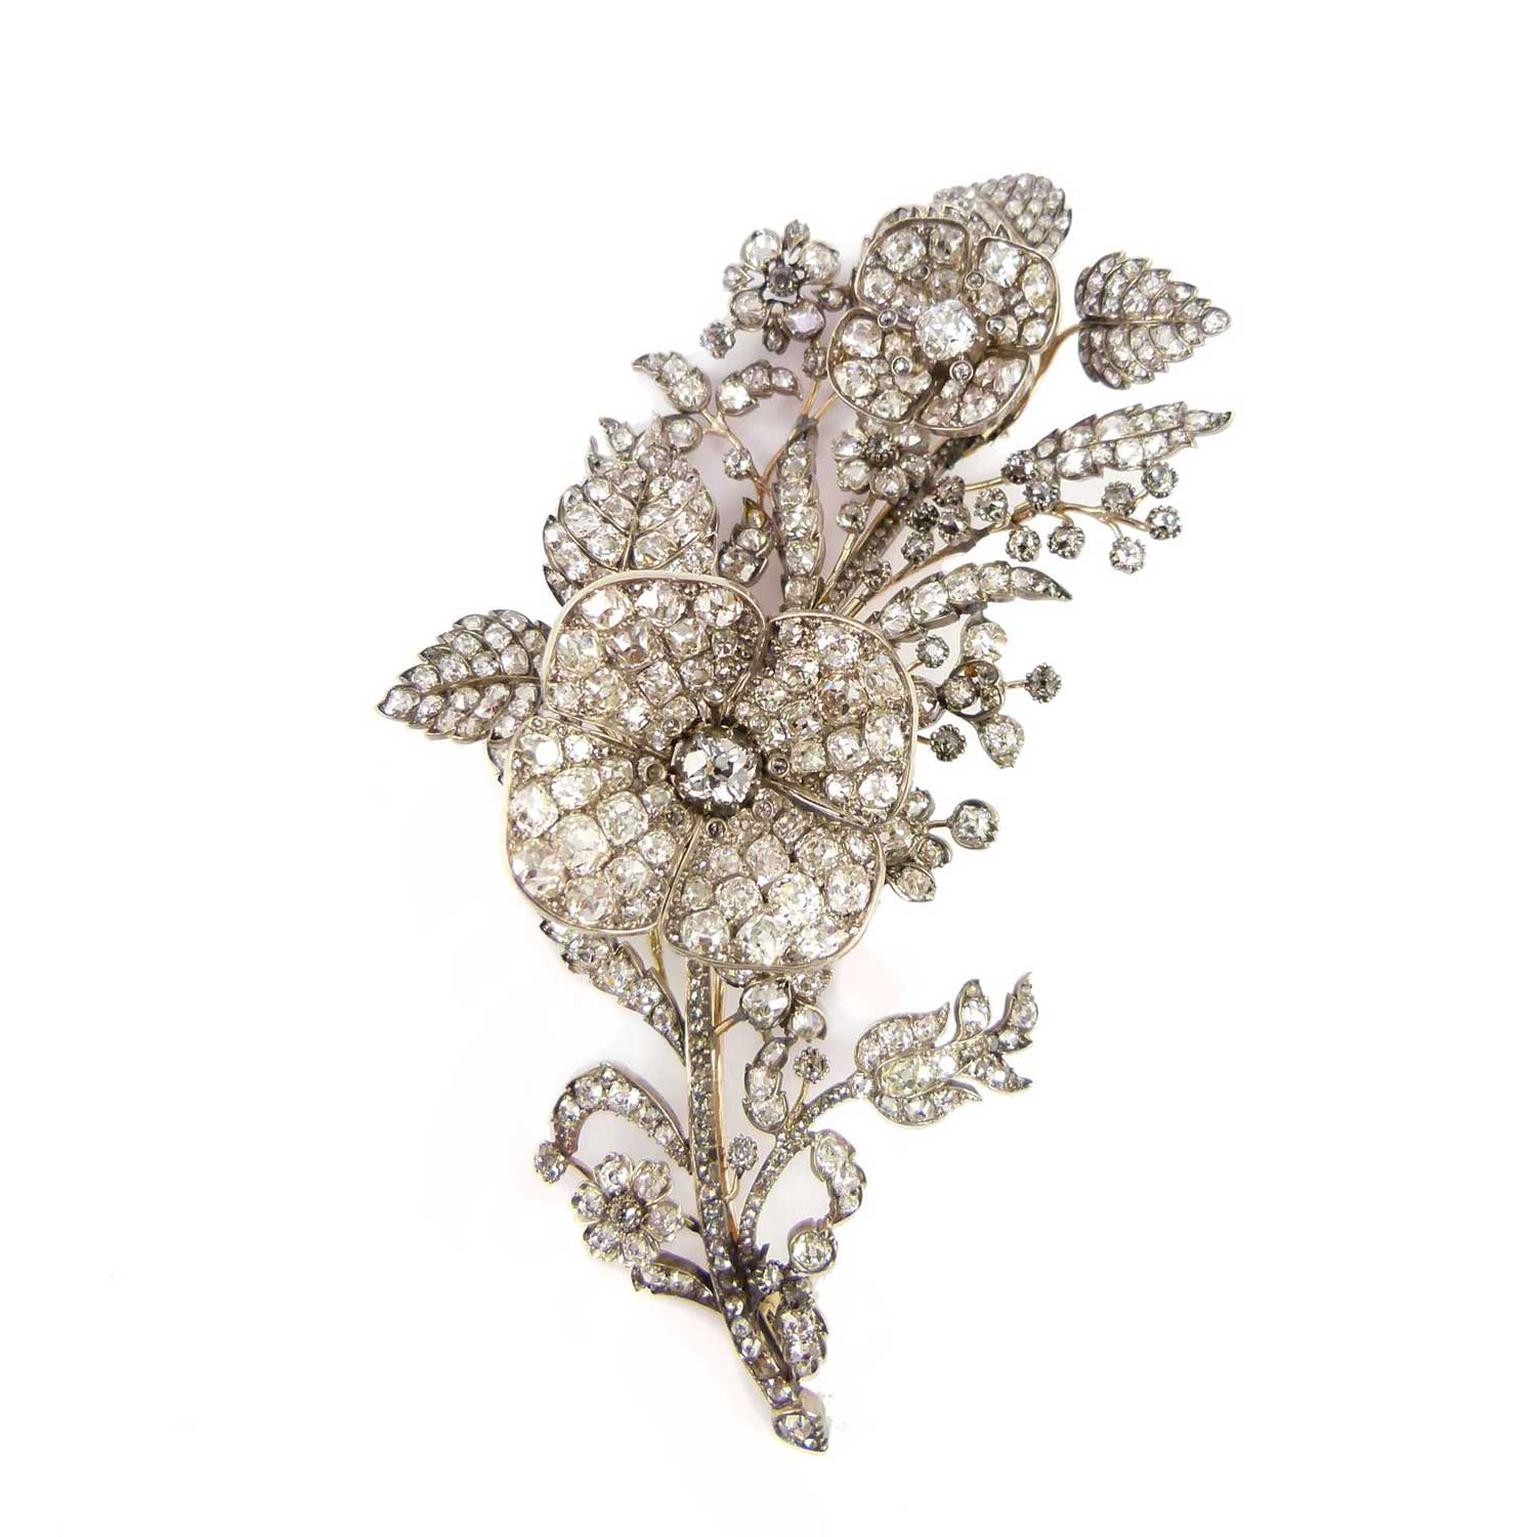 S.J. Phillips en tremblant antique floral spray and diamond brooch